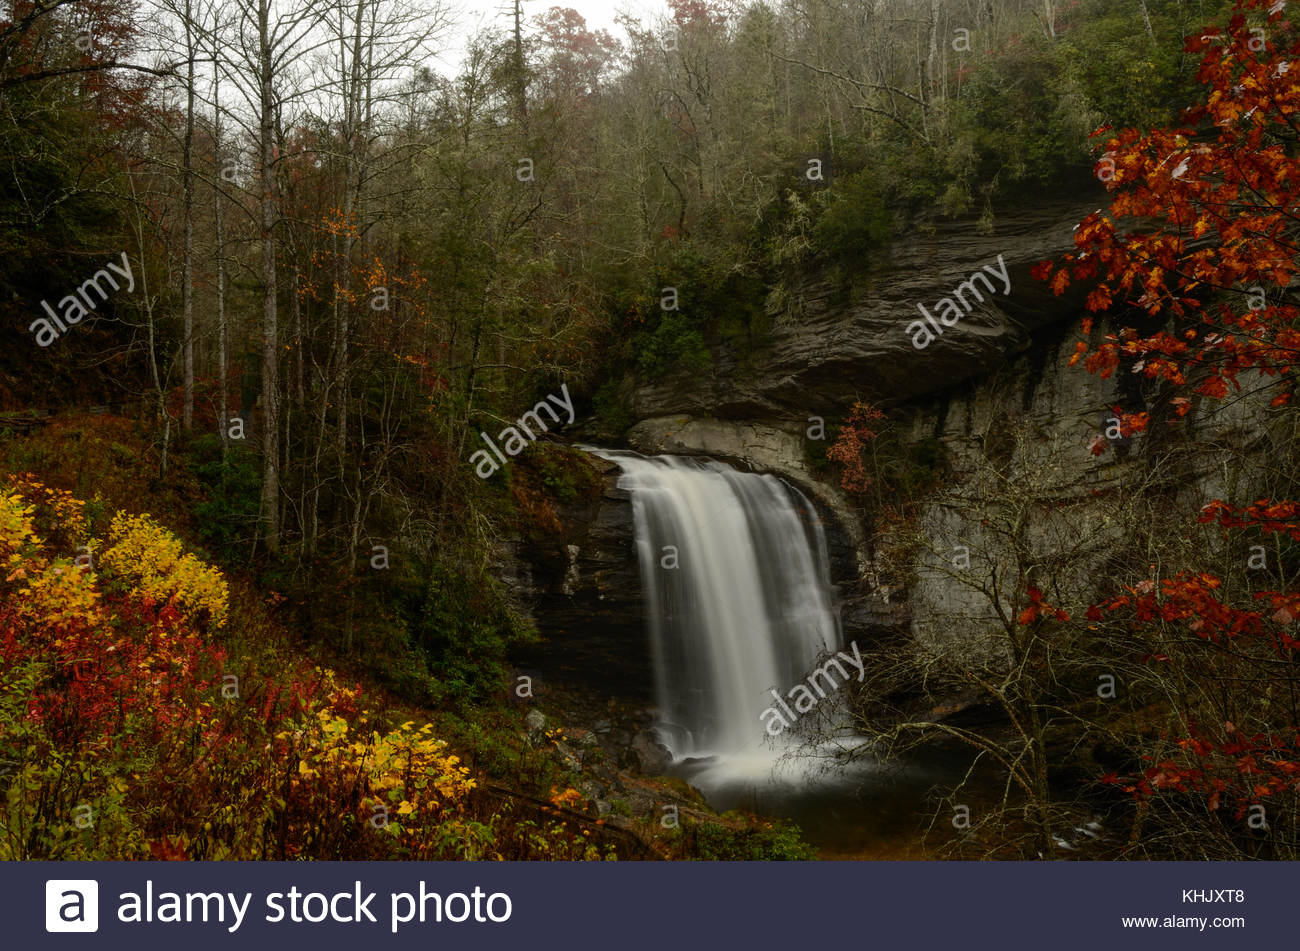 Looking Glass Falls - a Cascade west of Asheville North Carolina near Brevard NC. One of the most famous waterfalls - Stock Image